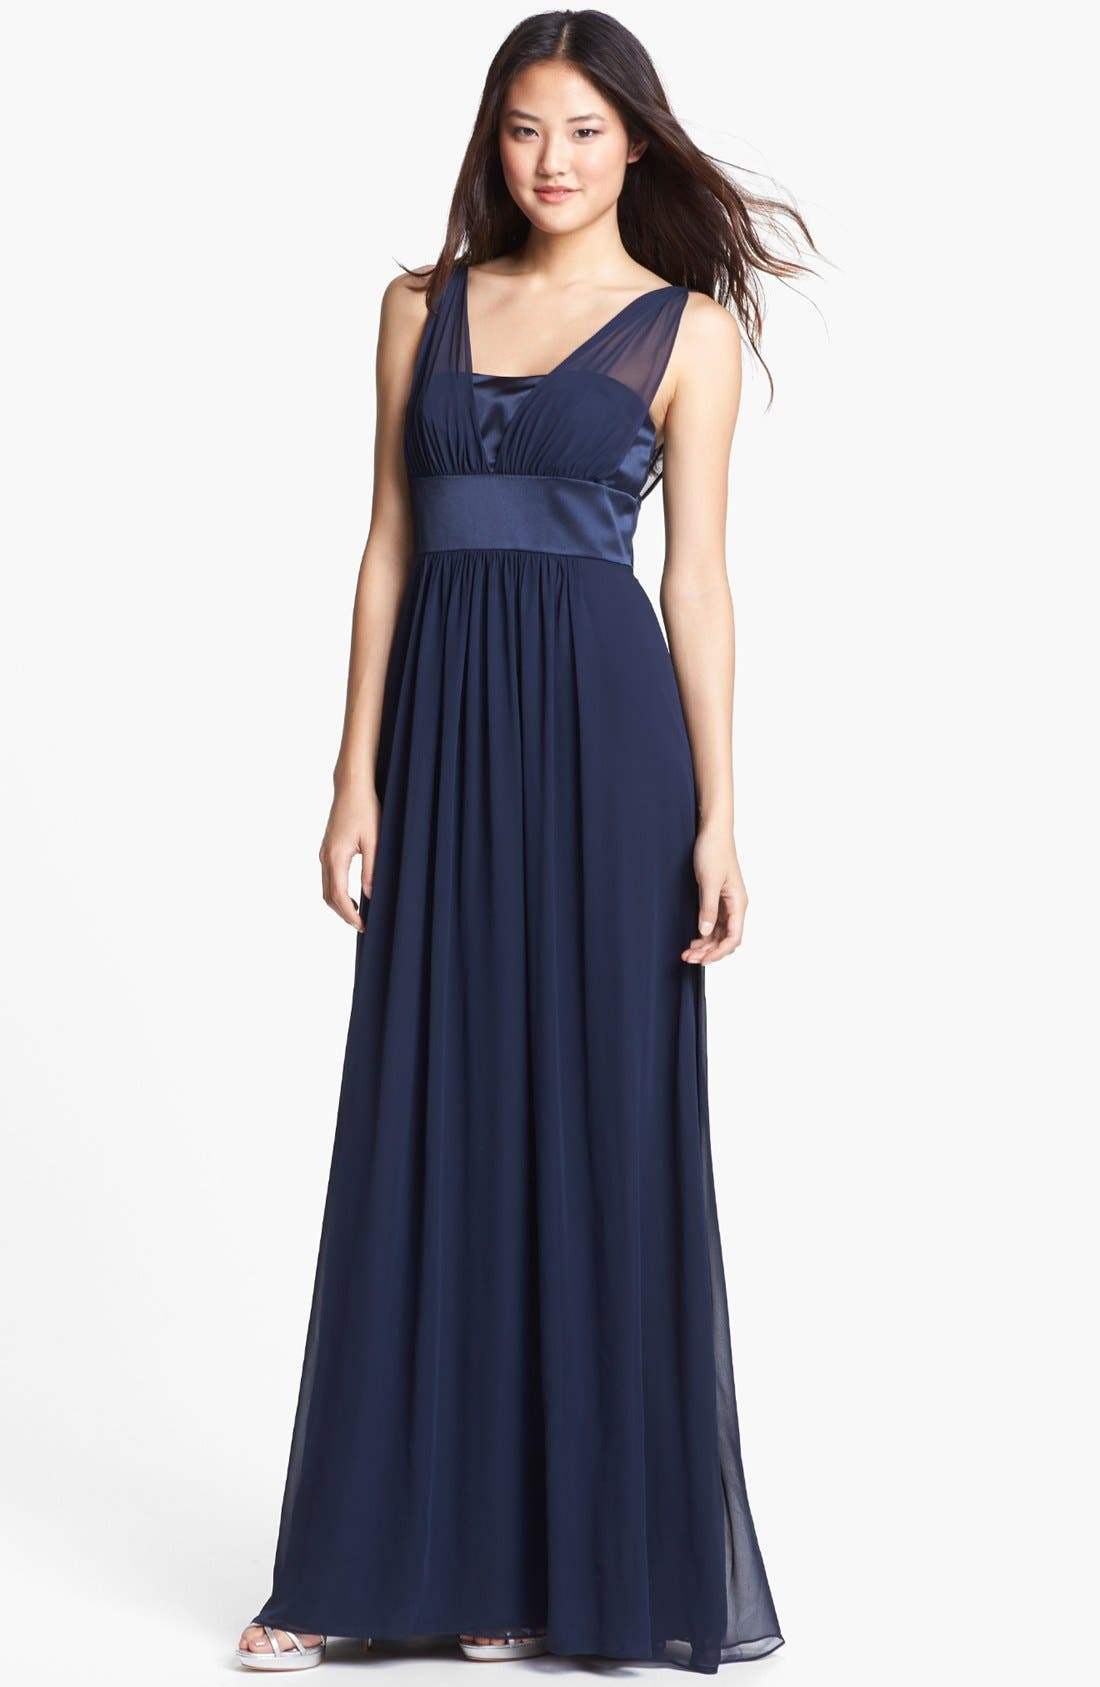 Alternate Image 1 Selected - Dessy Collection Satin & Chiffon Dress